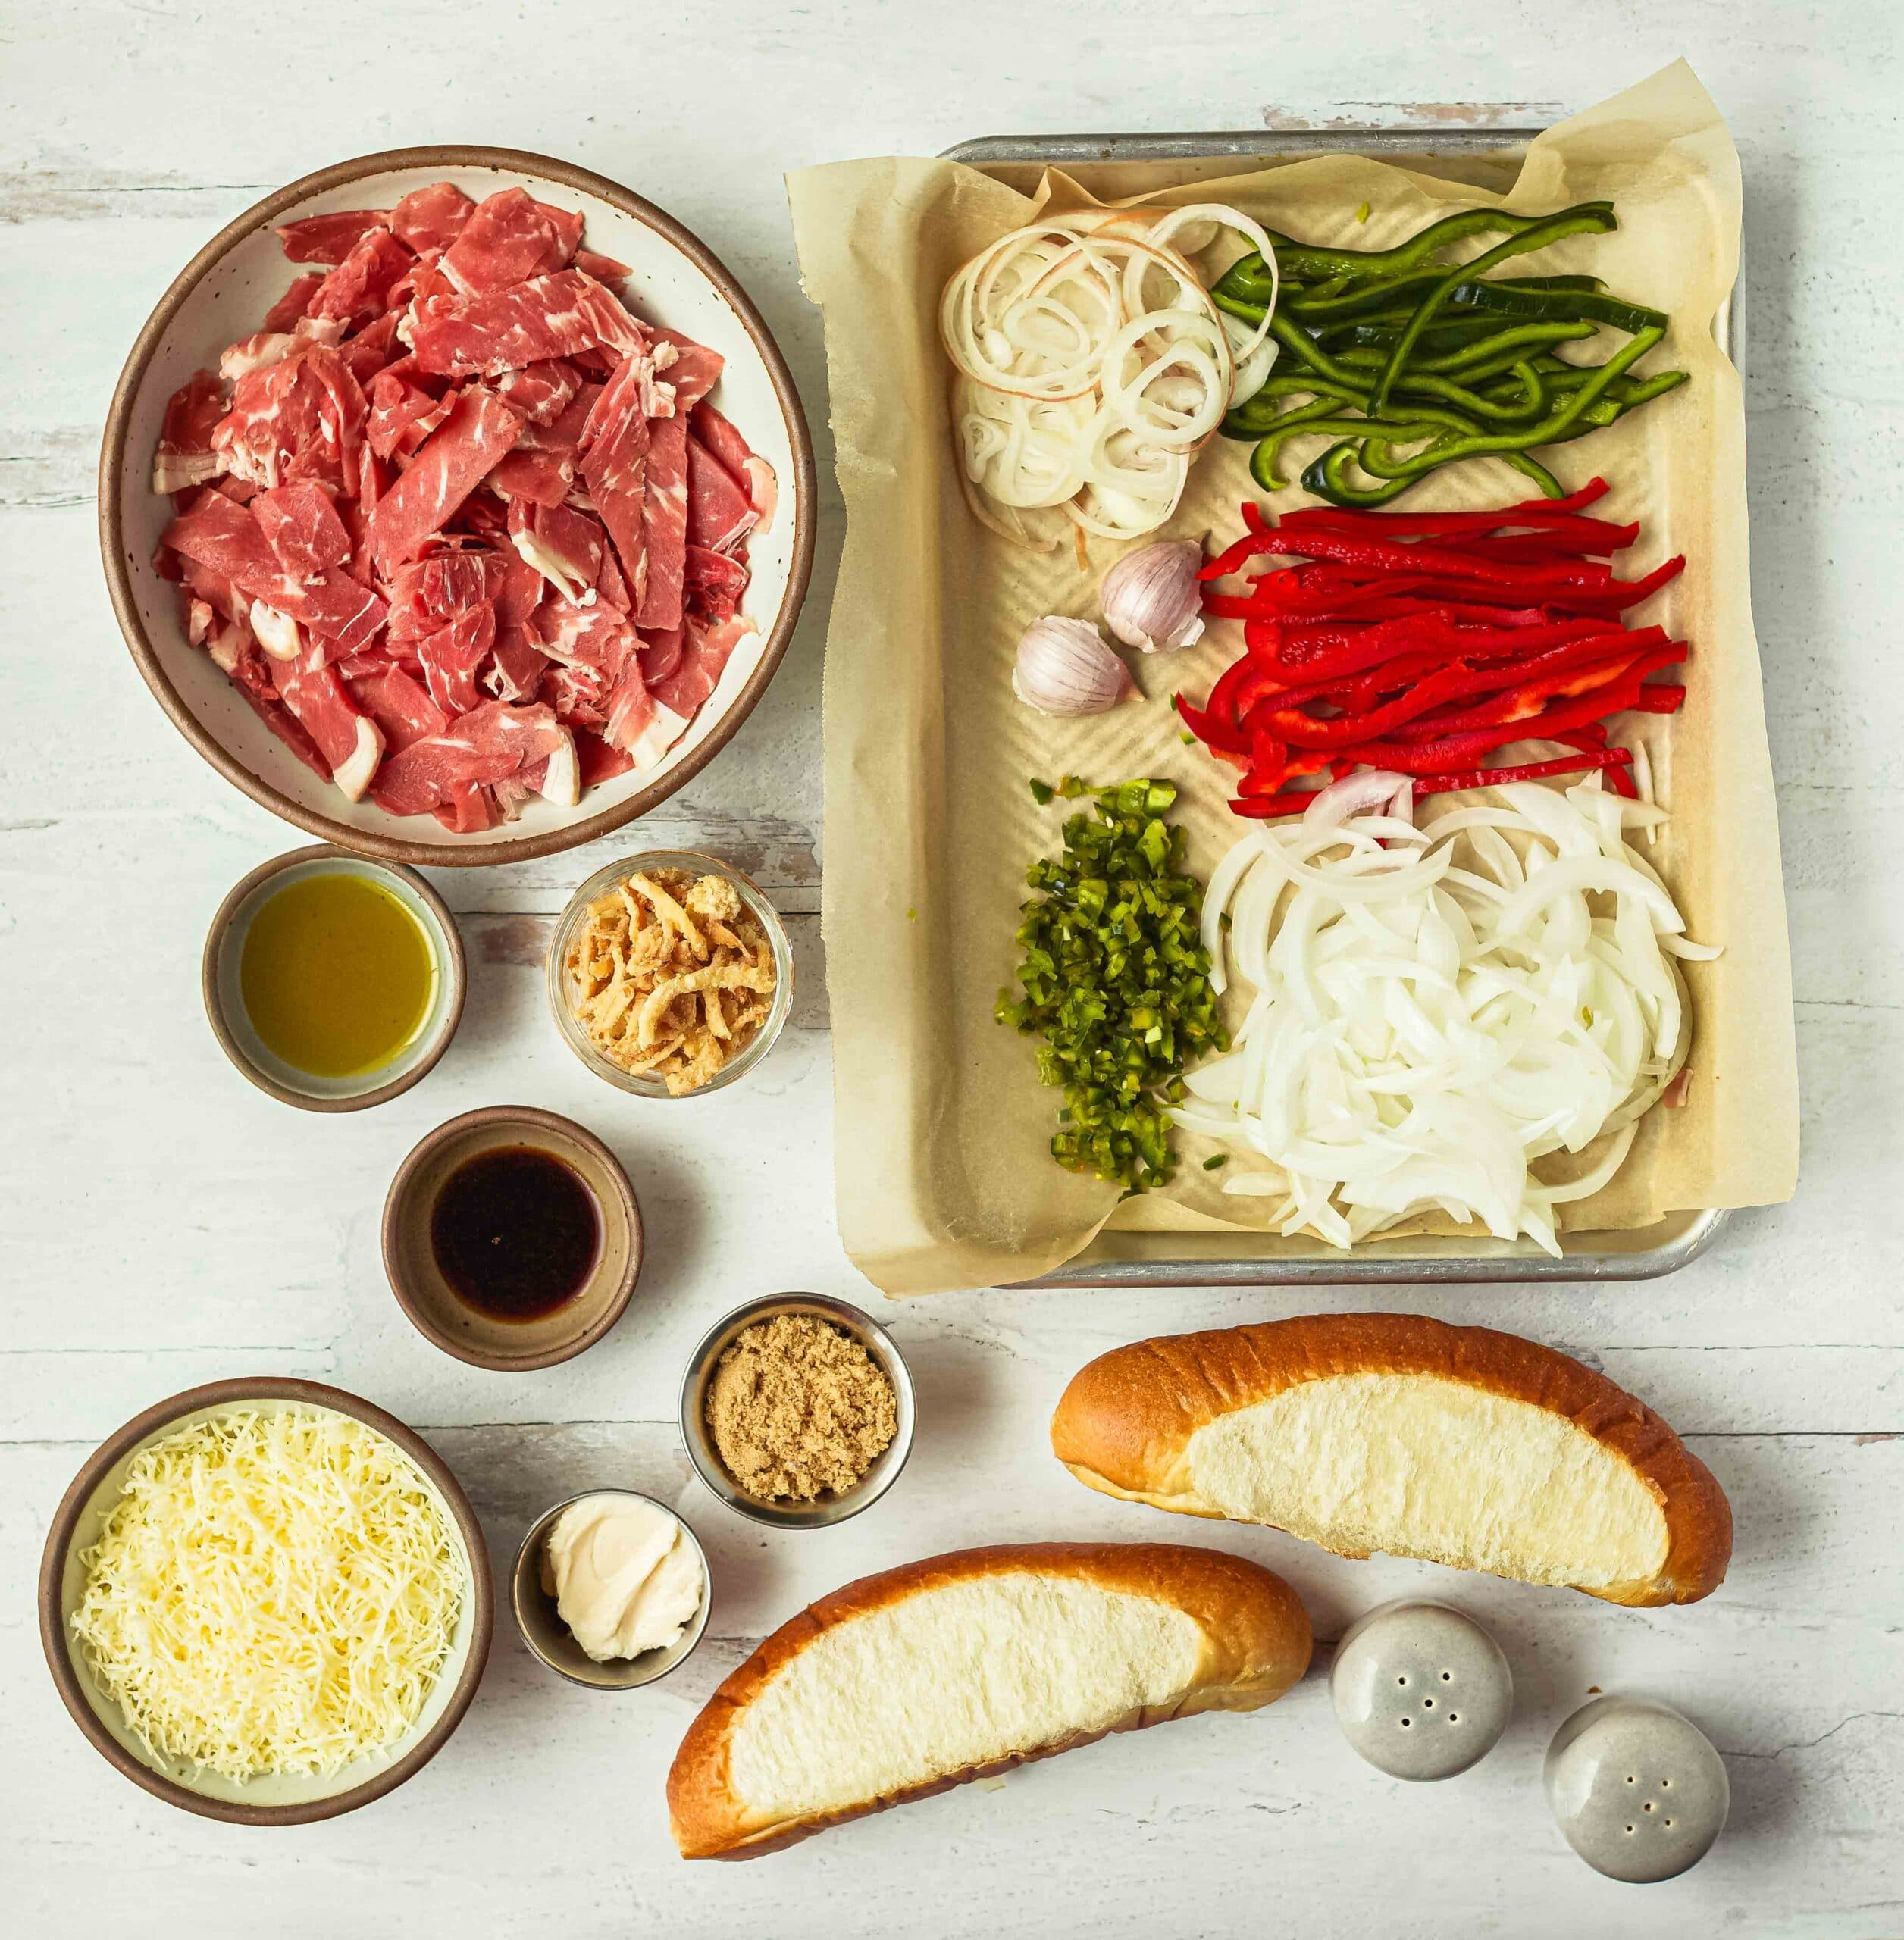 Ingredients laid out for a philly cheesesteak sandwich: sliced ribyee, onions, poblano peppers, red peppers, jalapenos, garlic, shallots, brown sugar, soy sauce, french fried onions, shredded cheese, mayonnaise, olive oil, hoagie buns, and salt and pepper shakers.